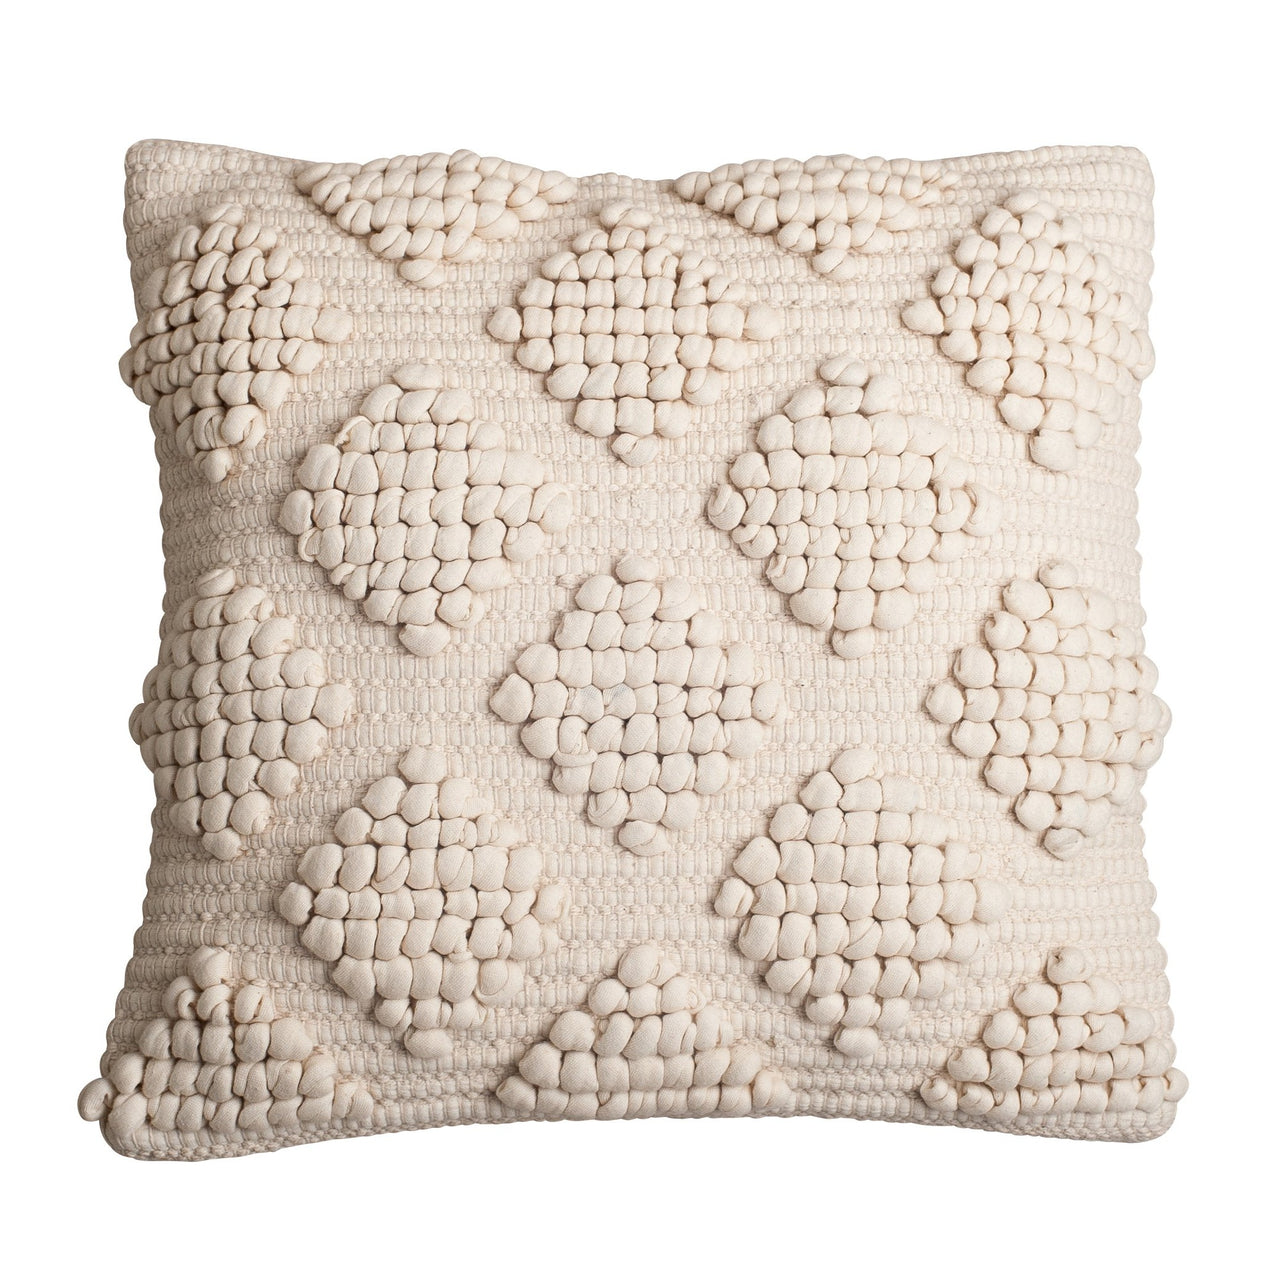 natural textured diamond boho cushion pillow